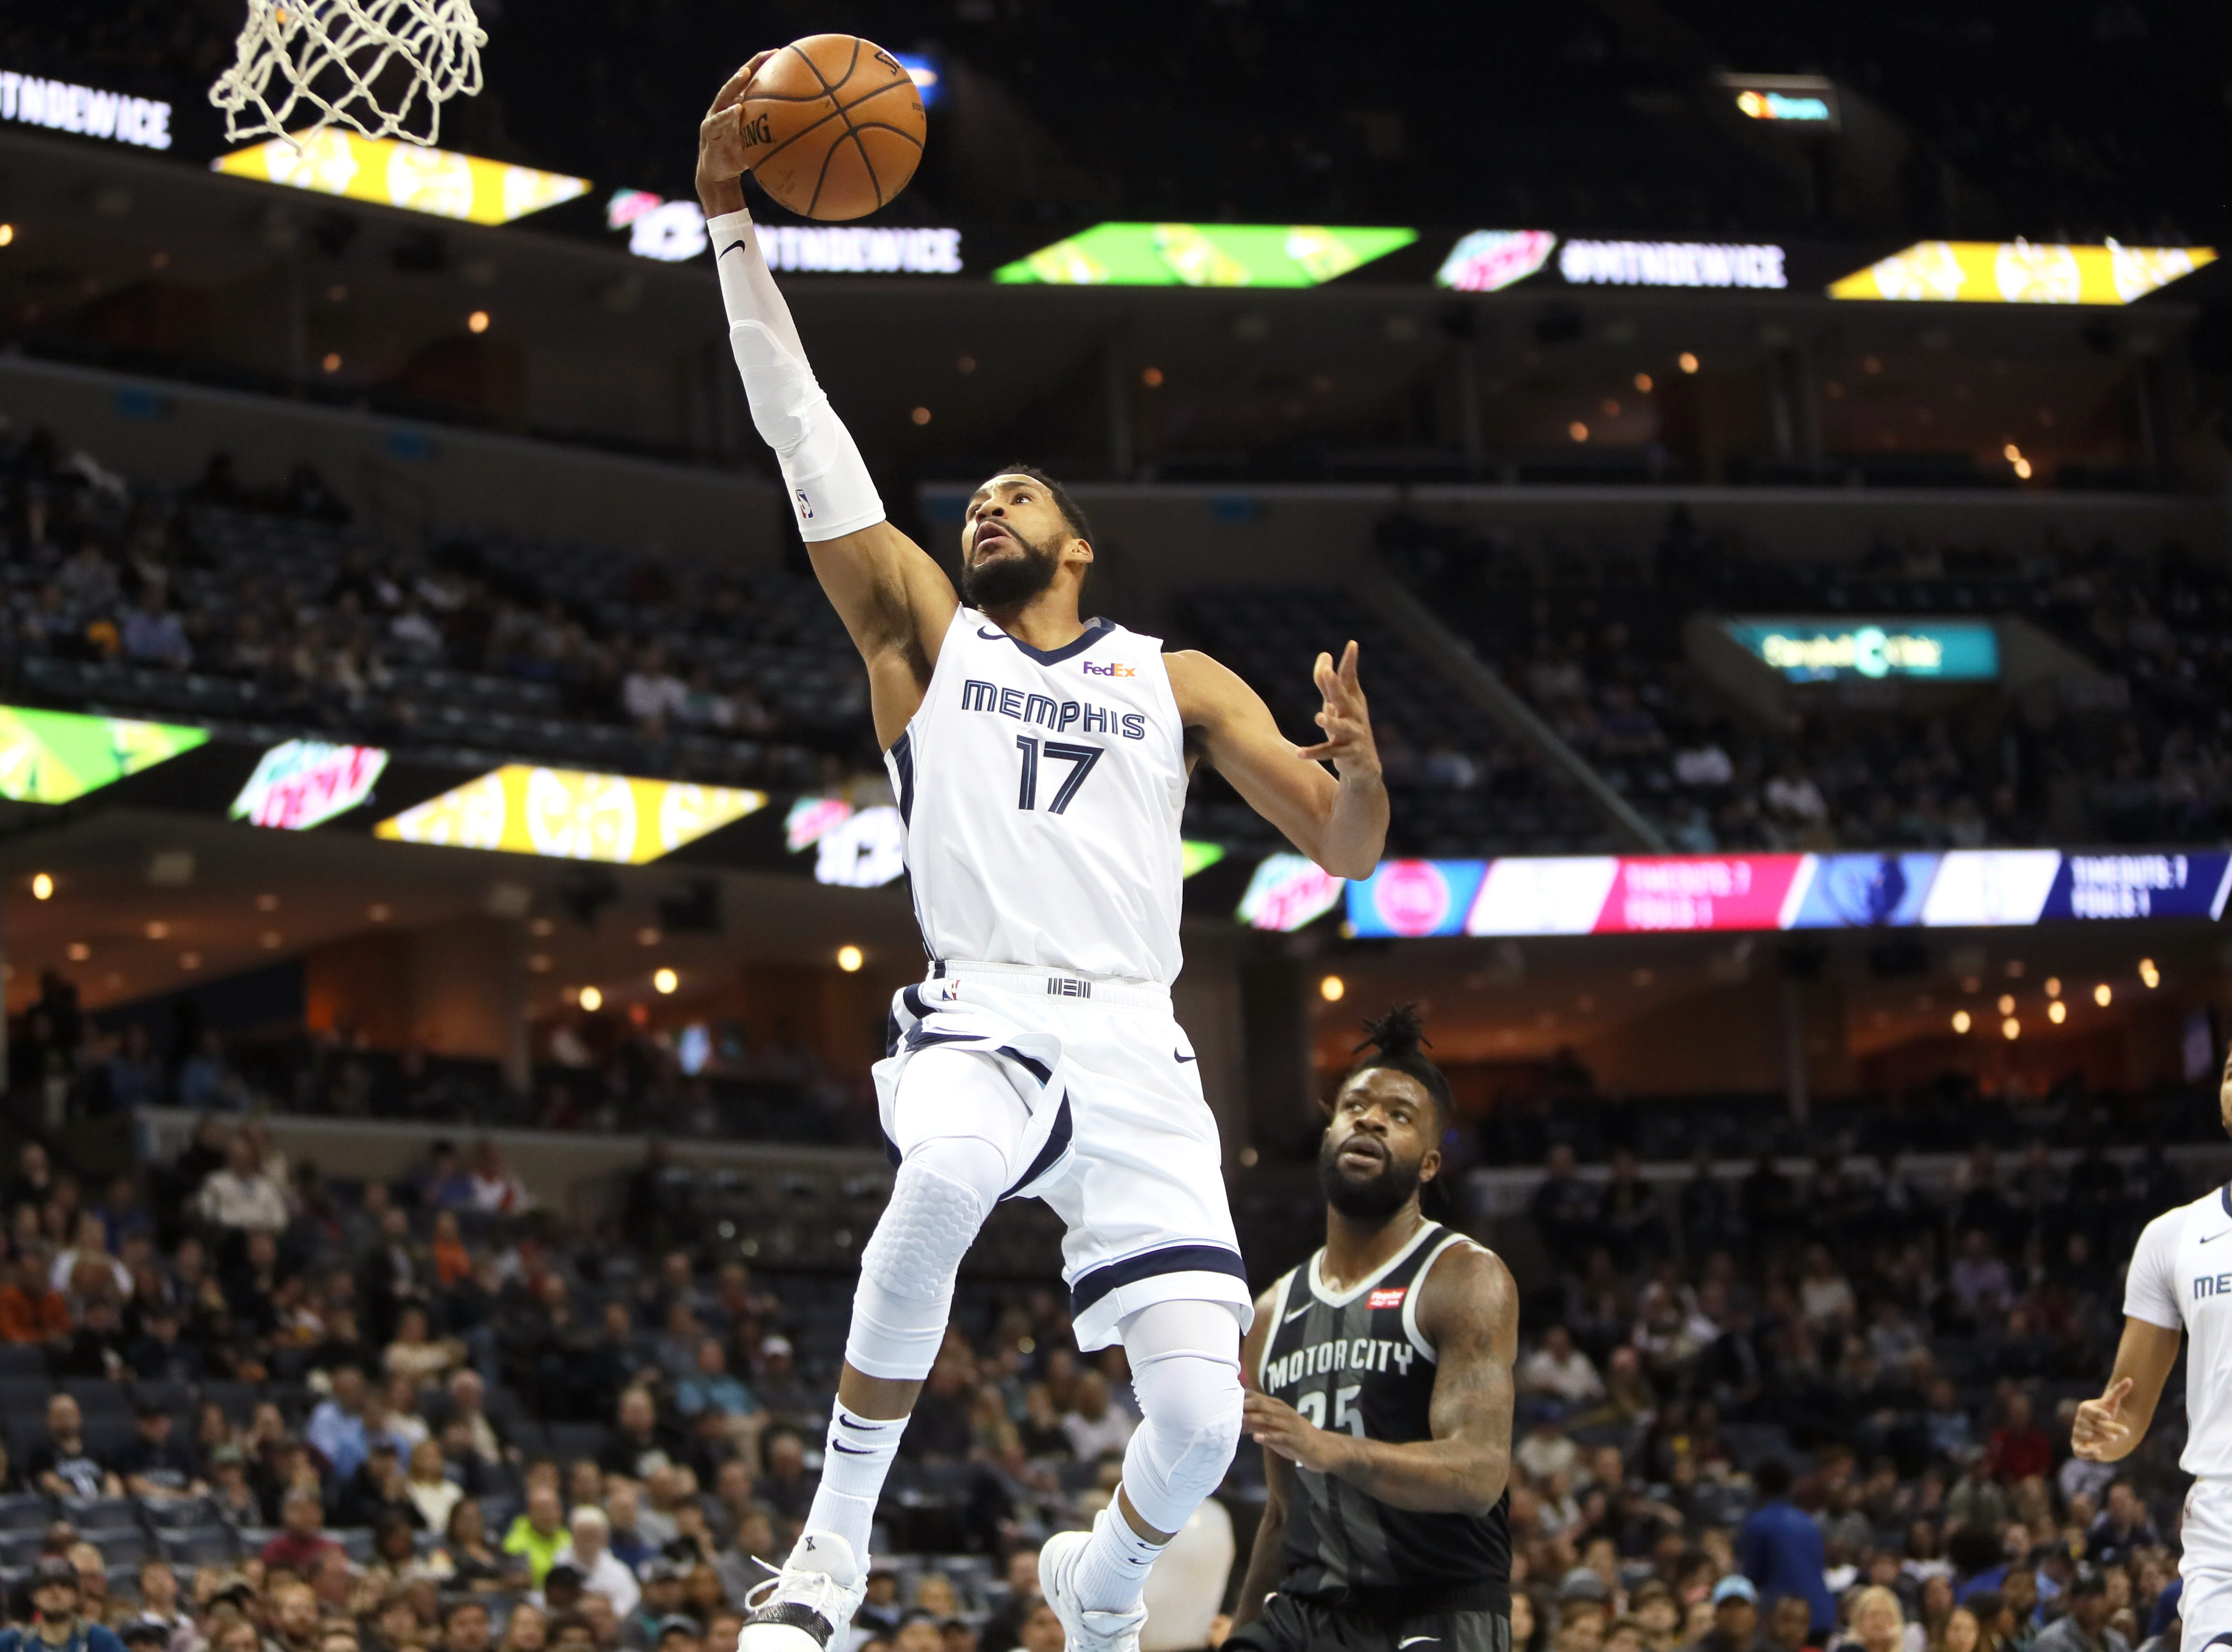 Memphis Grizzlies guard Garrett Temple lays the ball up on a fast break against the Detroit Pistons during their game at the FedExForum on Wednesday, January 2, 2019.